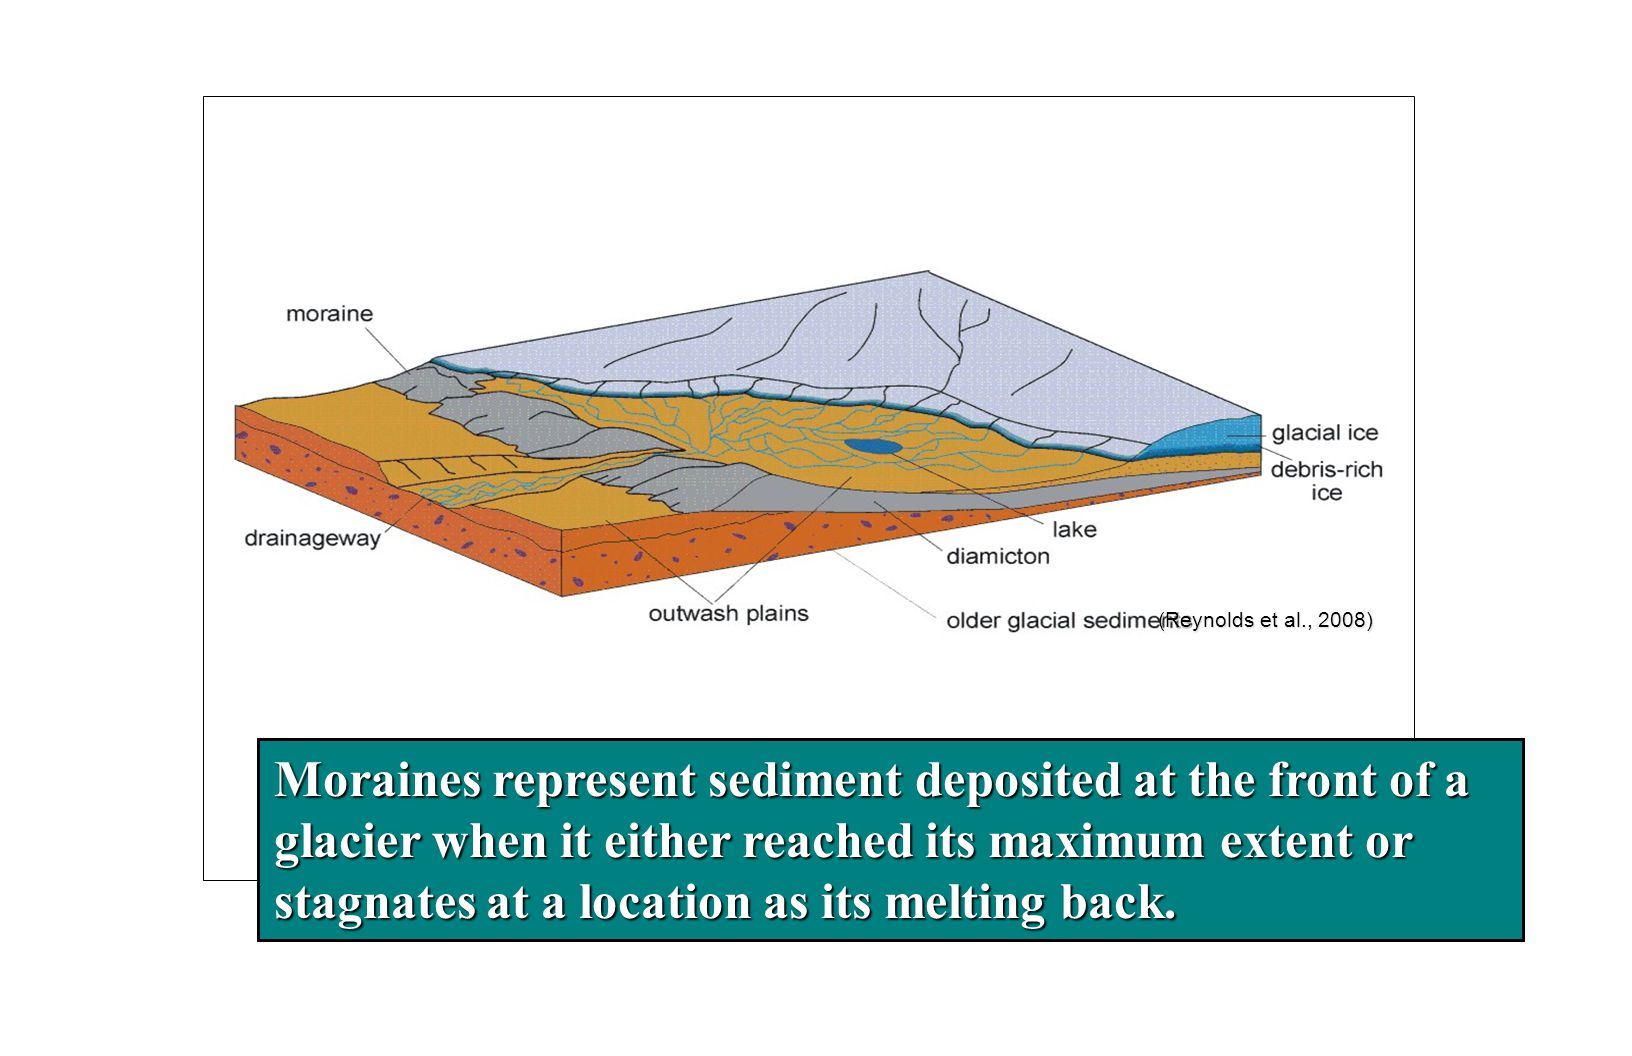 (Reynolds et al., 2008) Moraines represent sediment deposited at the front of a glacier when it either reached its maximum extent or stagnates at a location as its melting back.